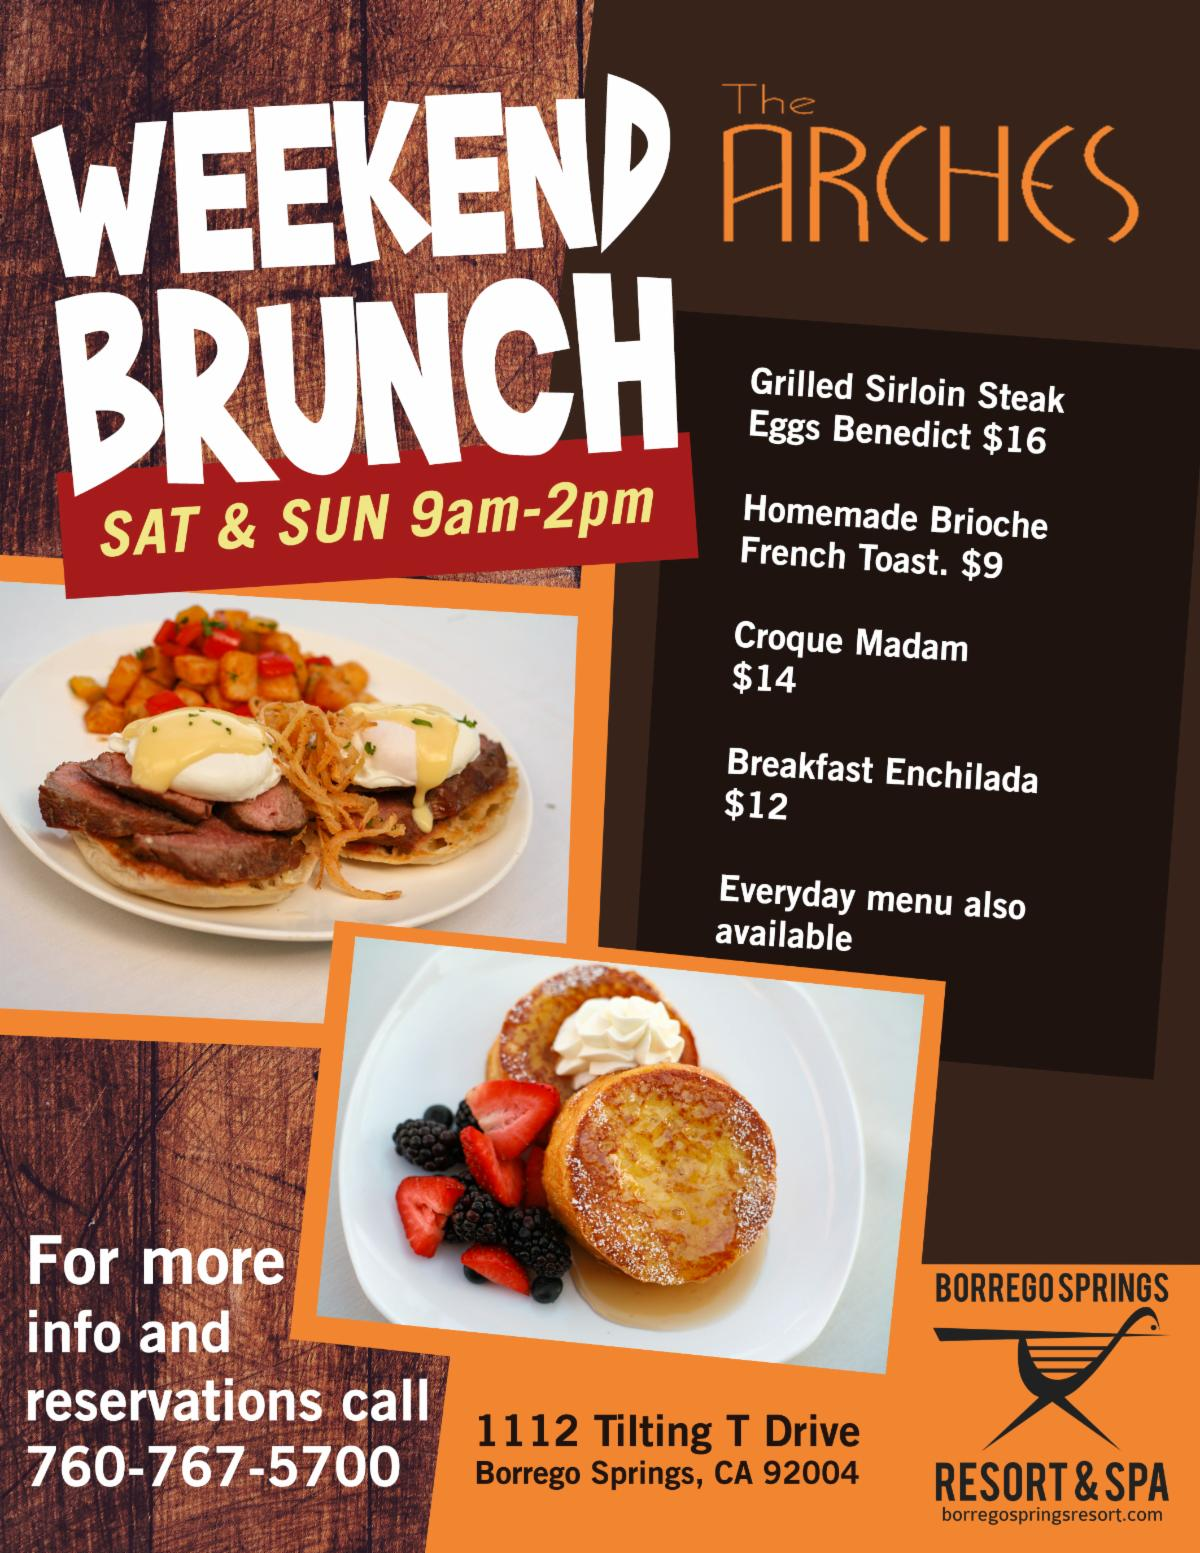 Weekend Brunch at The Arches at the Borrego Springs Resort